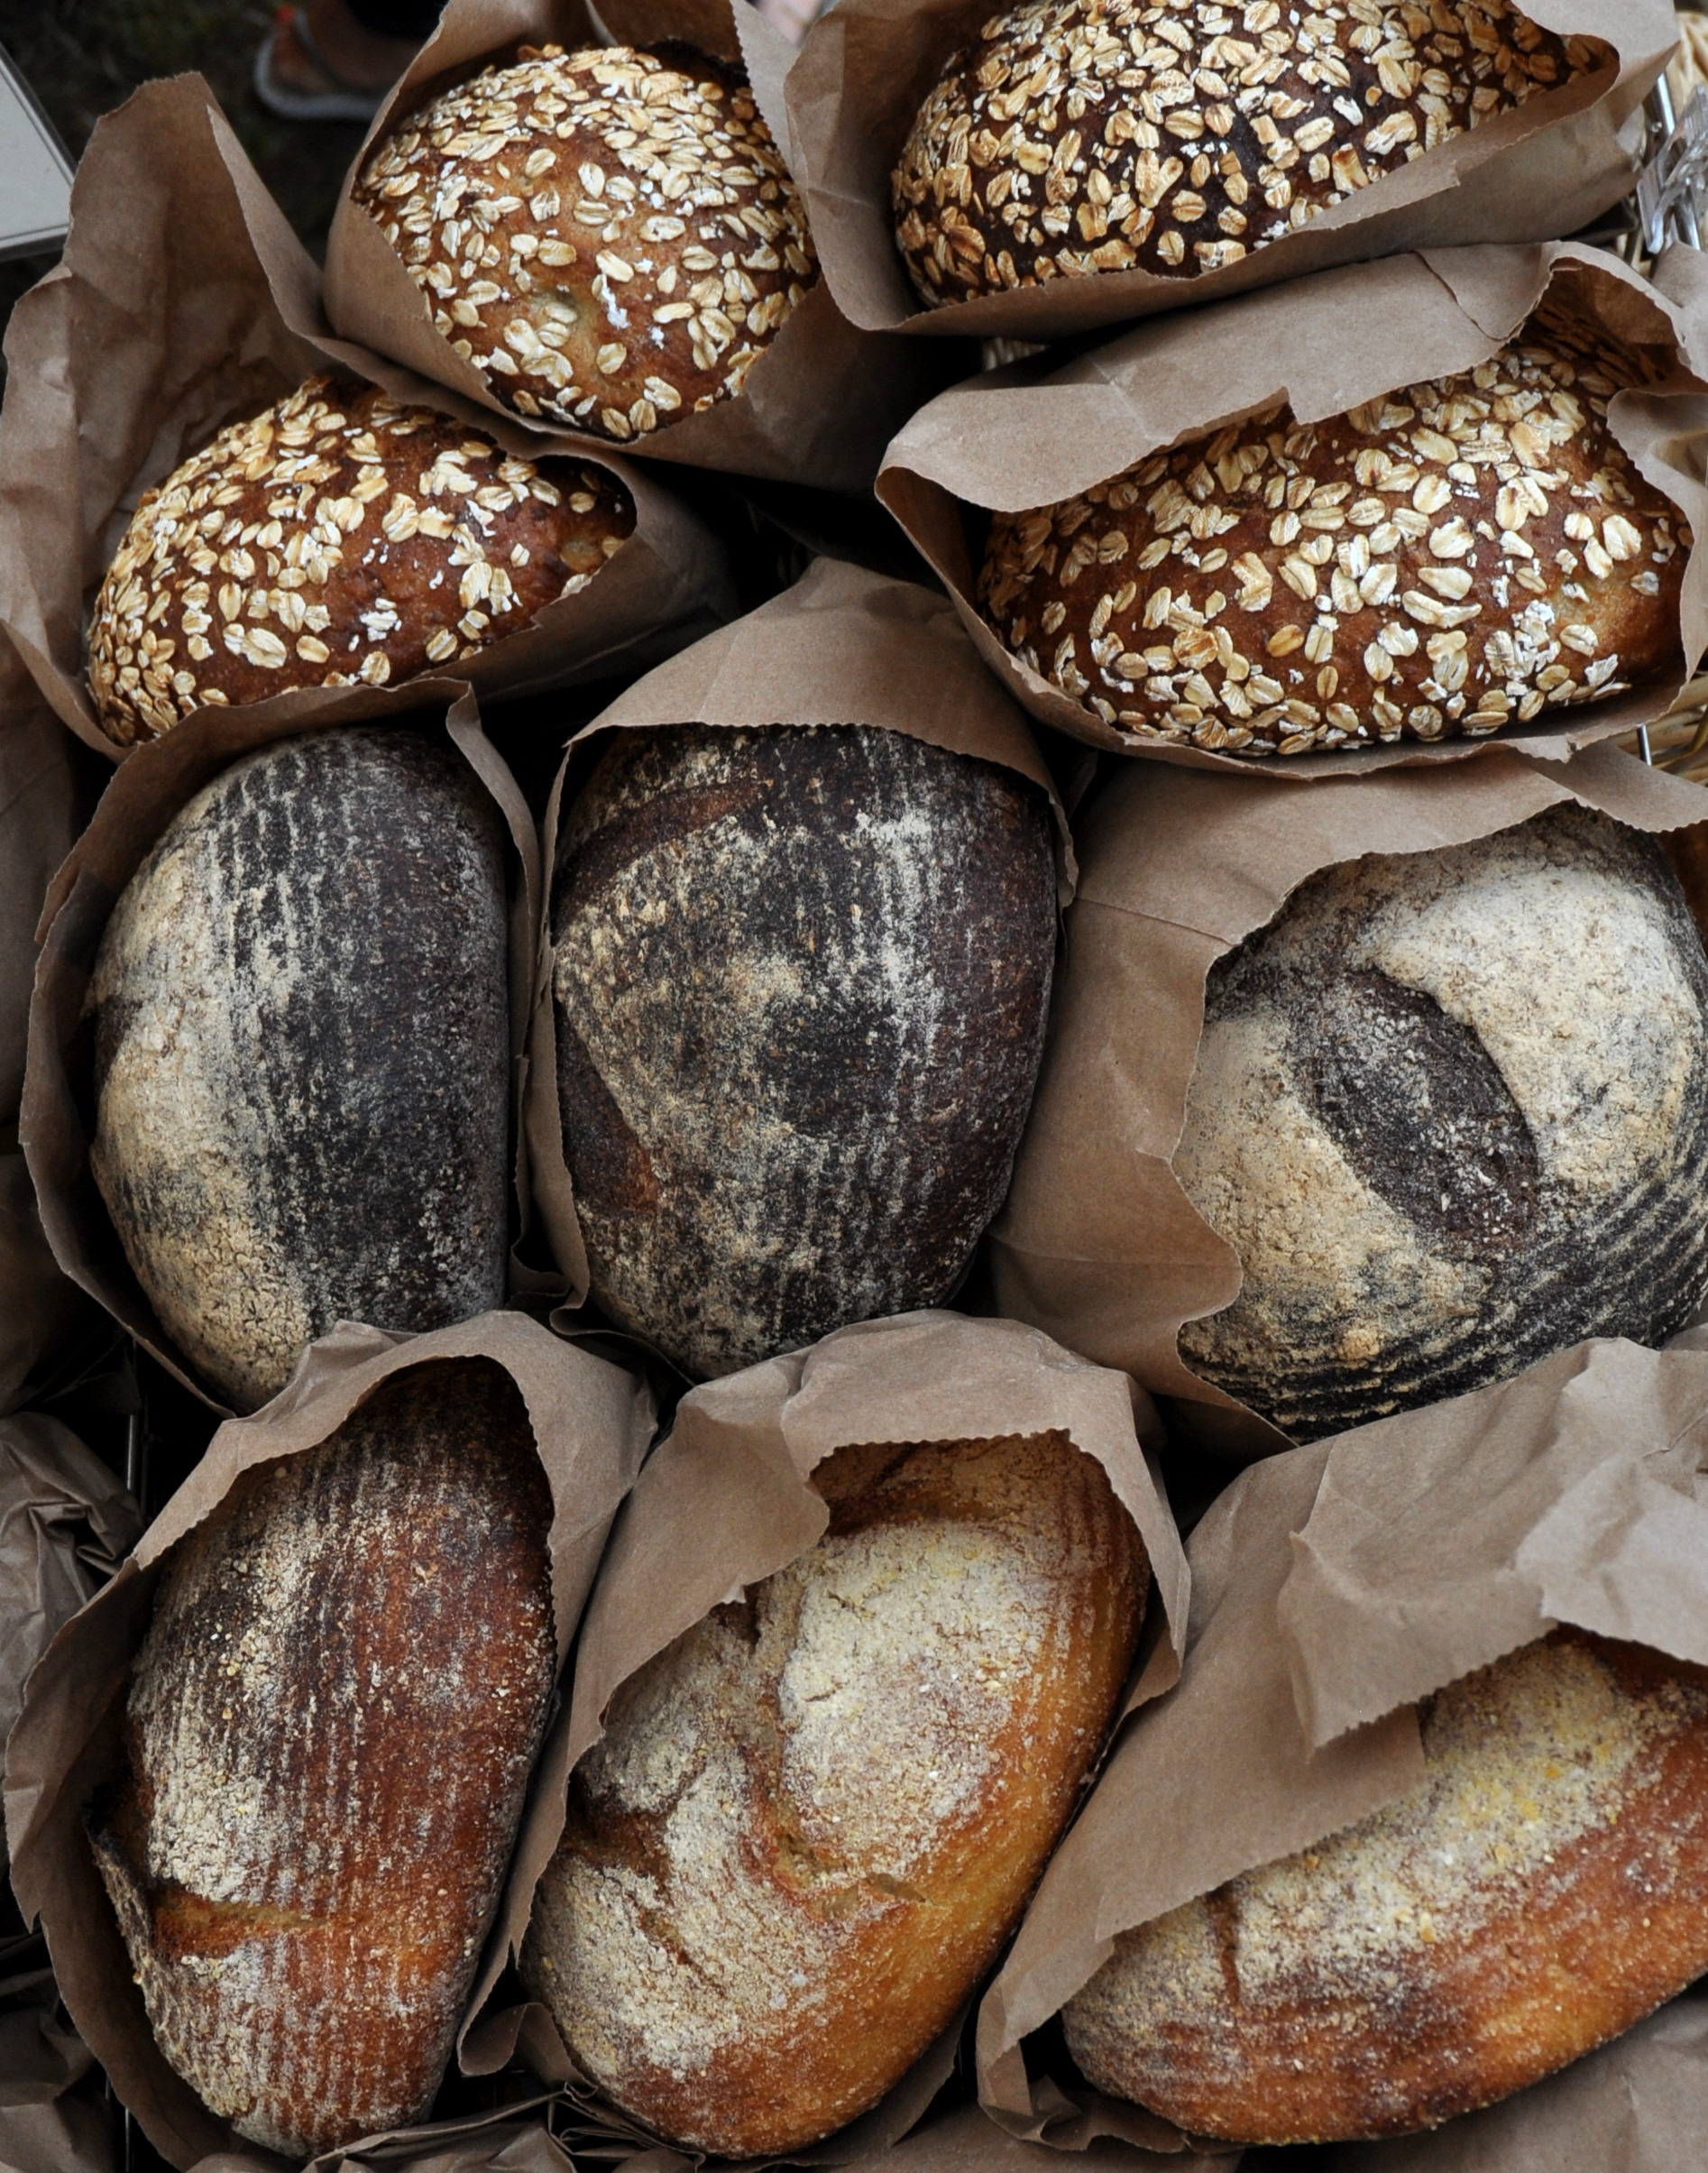 Artisan breads from Tall Grass Bakery at Wallingford Farmers Market. Copyright Zachary D. Lyons.